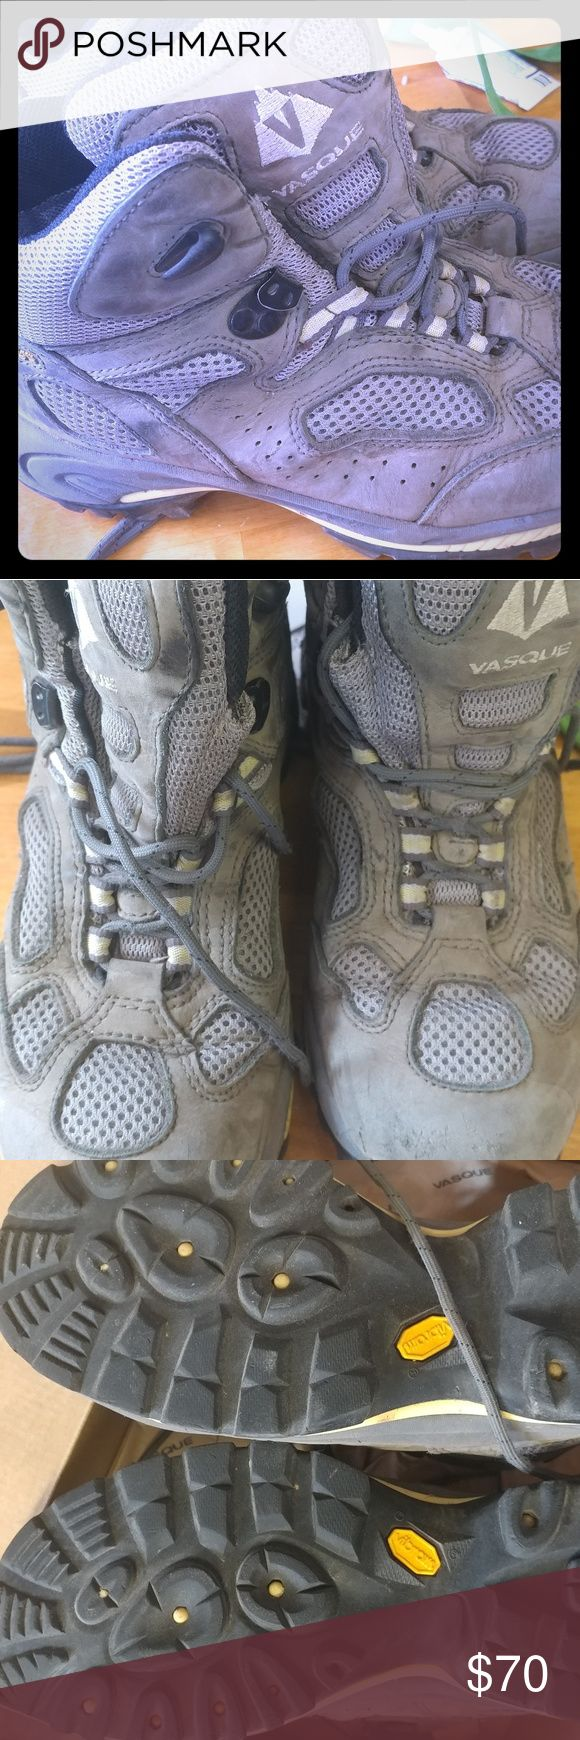 Vasque Hiking boots Incredible hiking boots! Used once on a backpacking trip. They are to big and need a new home. Great cushion and tread left. Let me know if you have any questions. Vasque Shoes Lace Up Boots